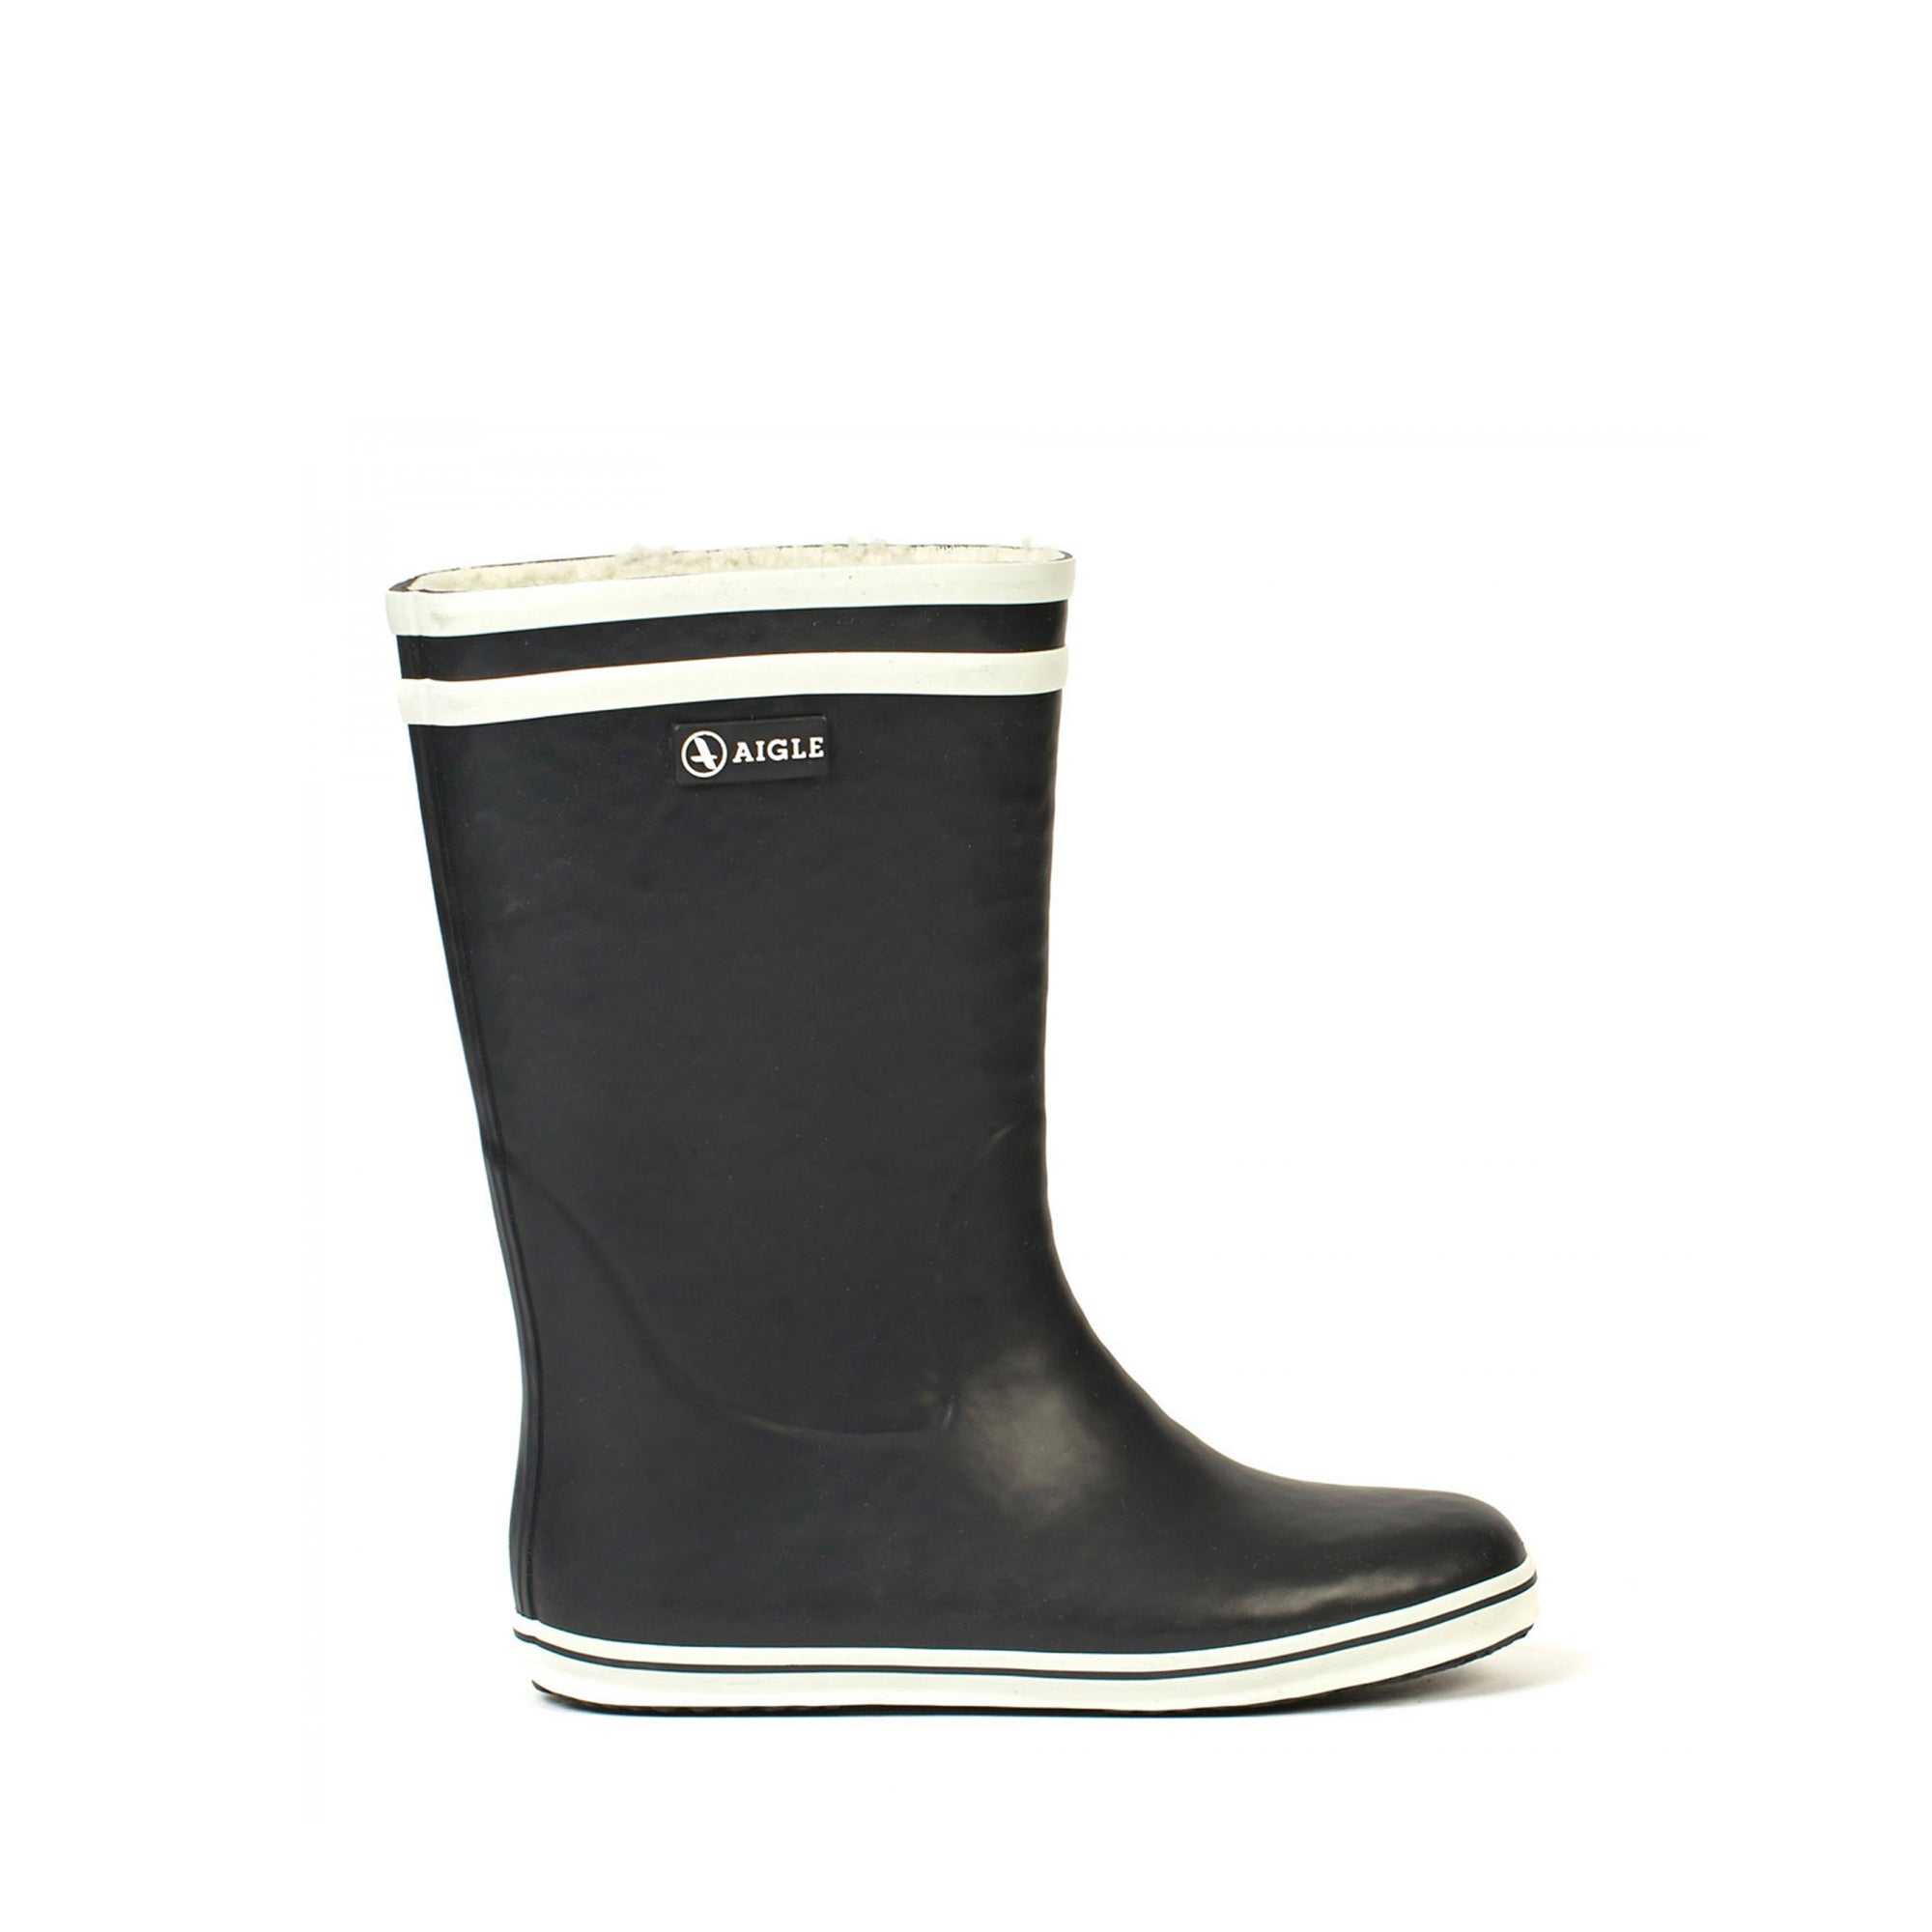 Malouine Fur Lined Rubber Boots <br> Marine